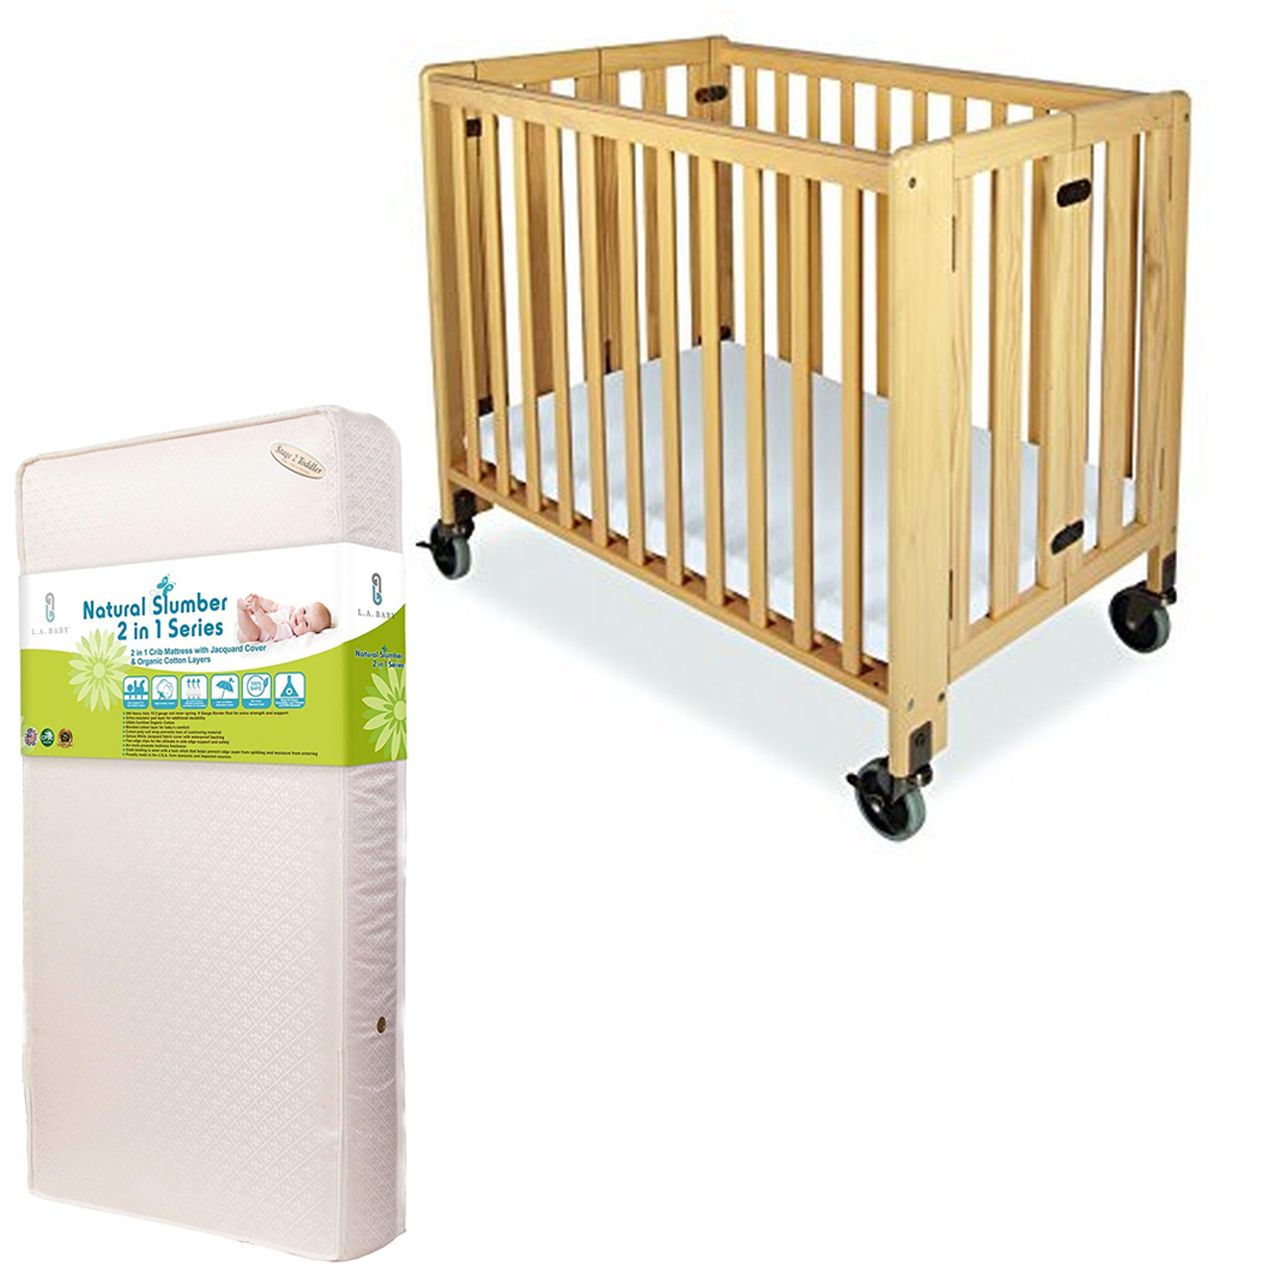 PACKAGE 8 (COMPACT CRIB)